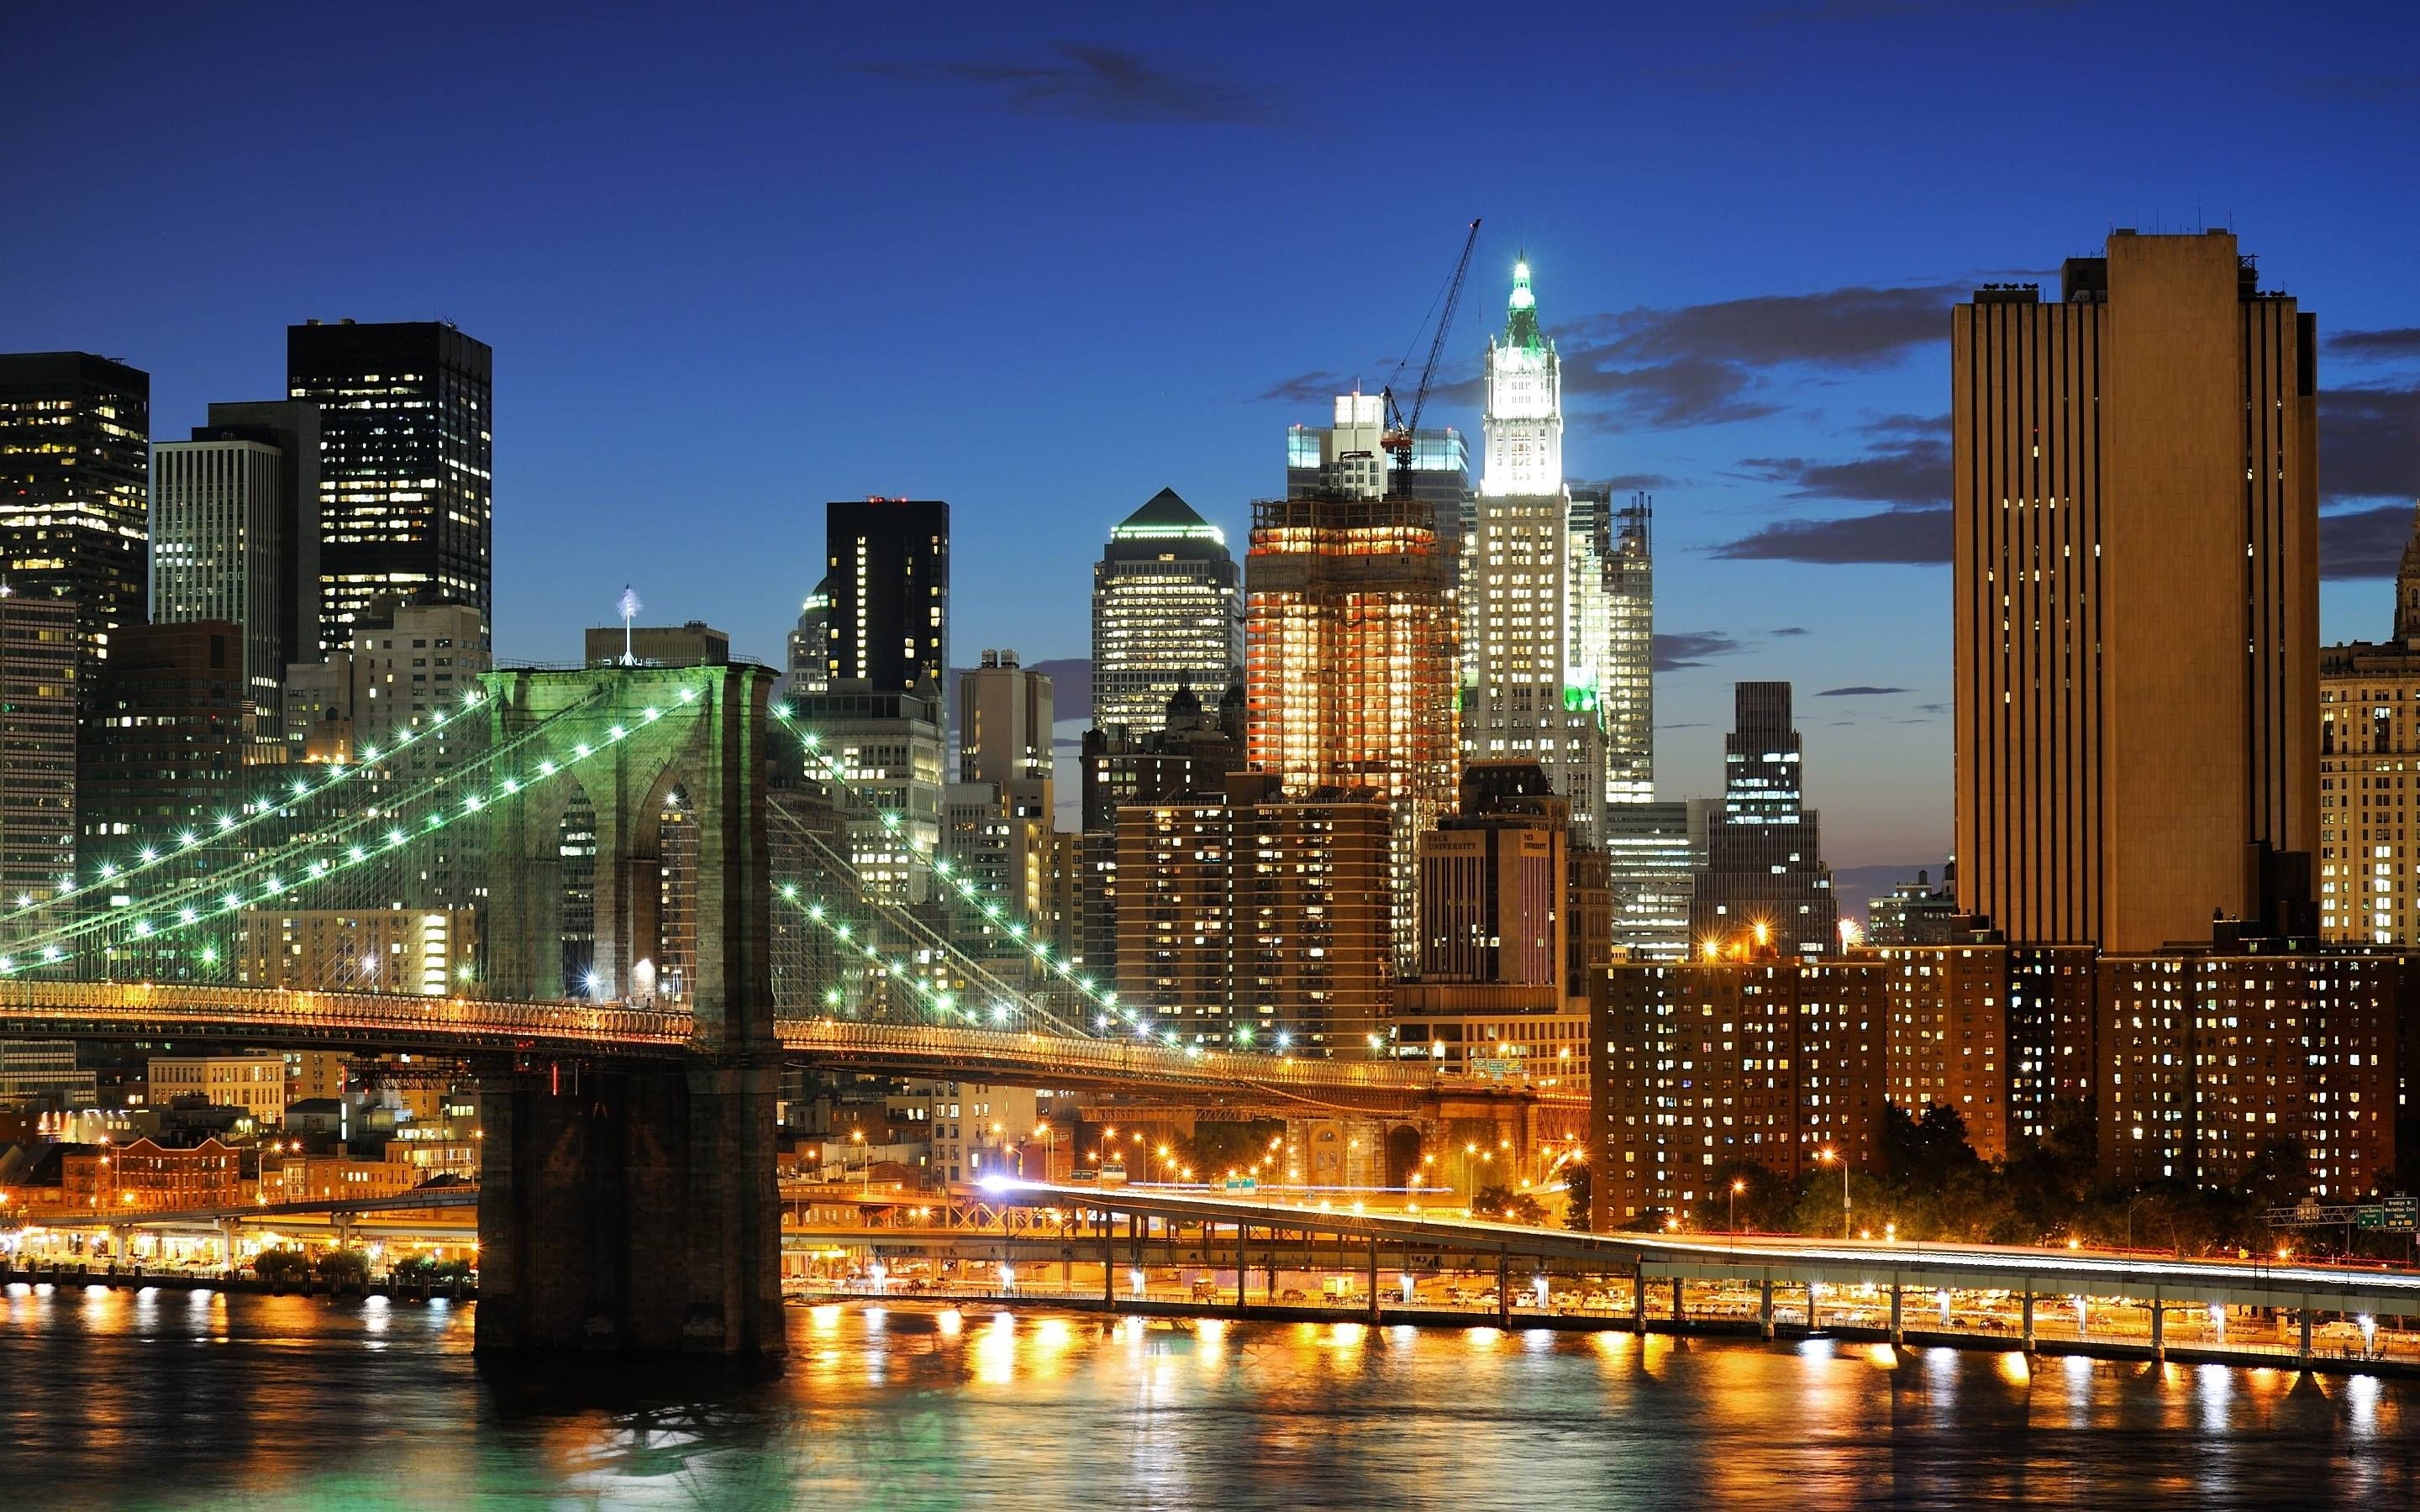 Skyscrapers United States Ny City Wallpaper With 1366x768 New York City Background New York Tours New York Wallpaper